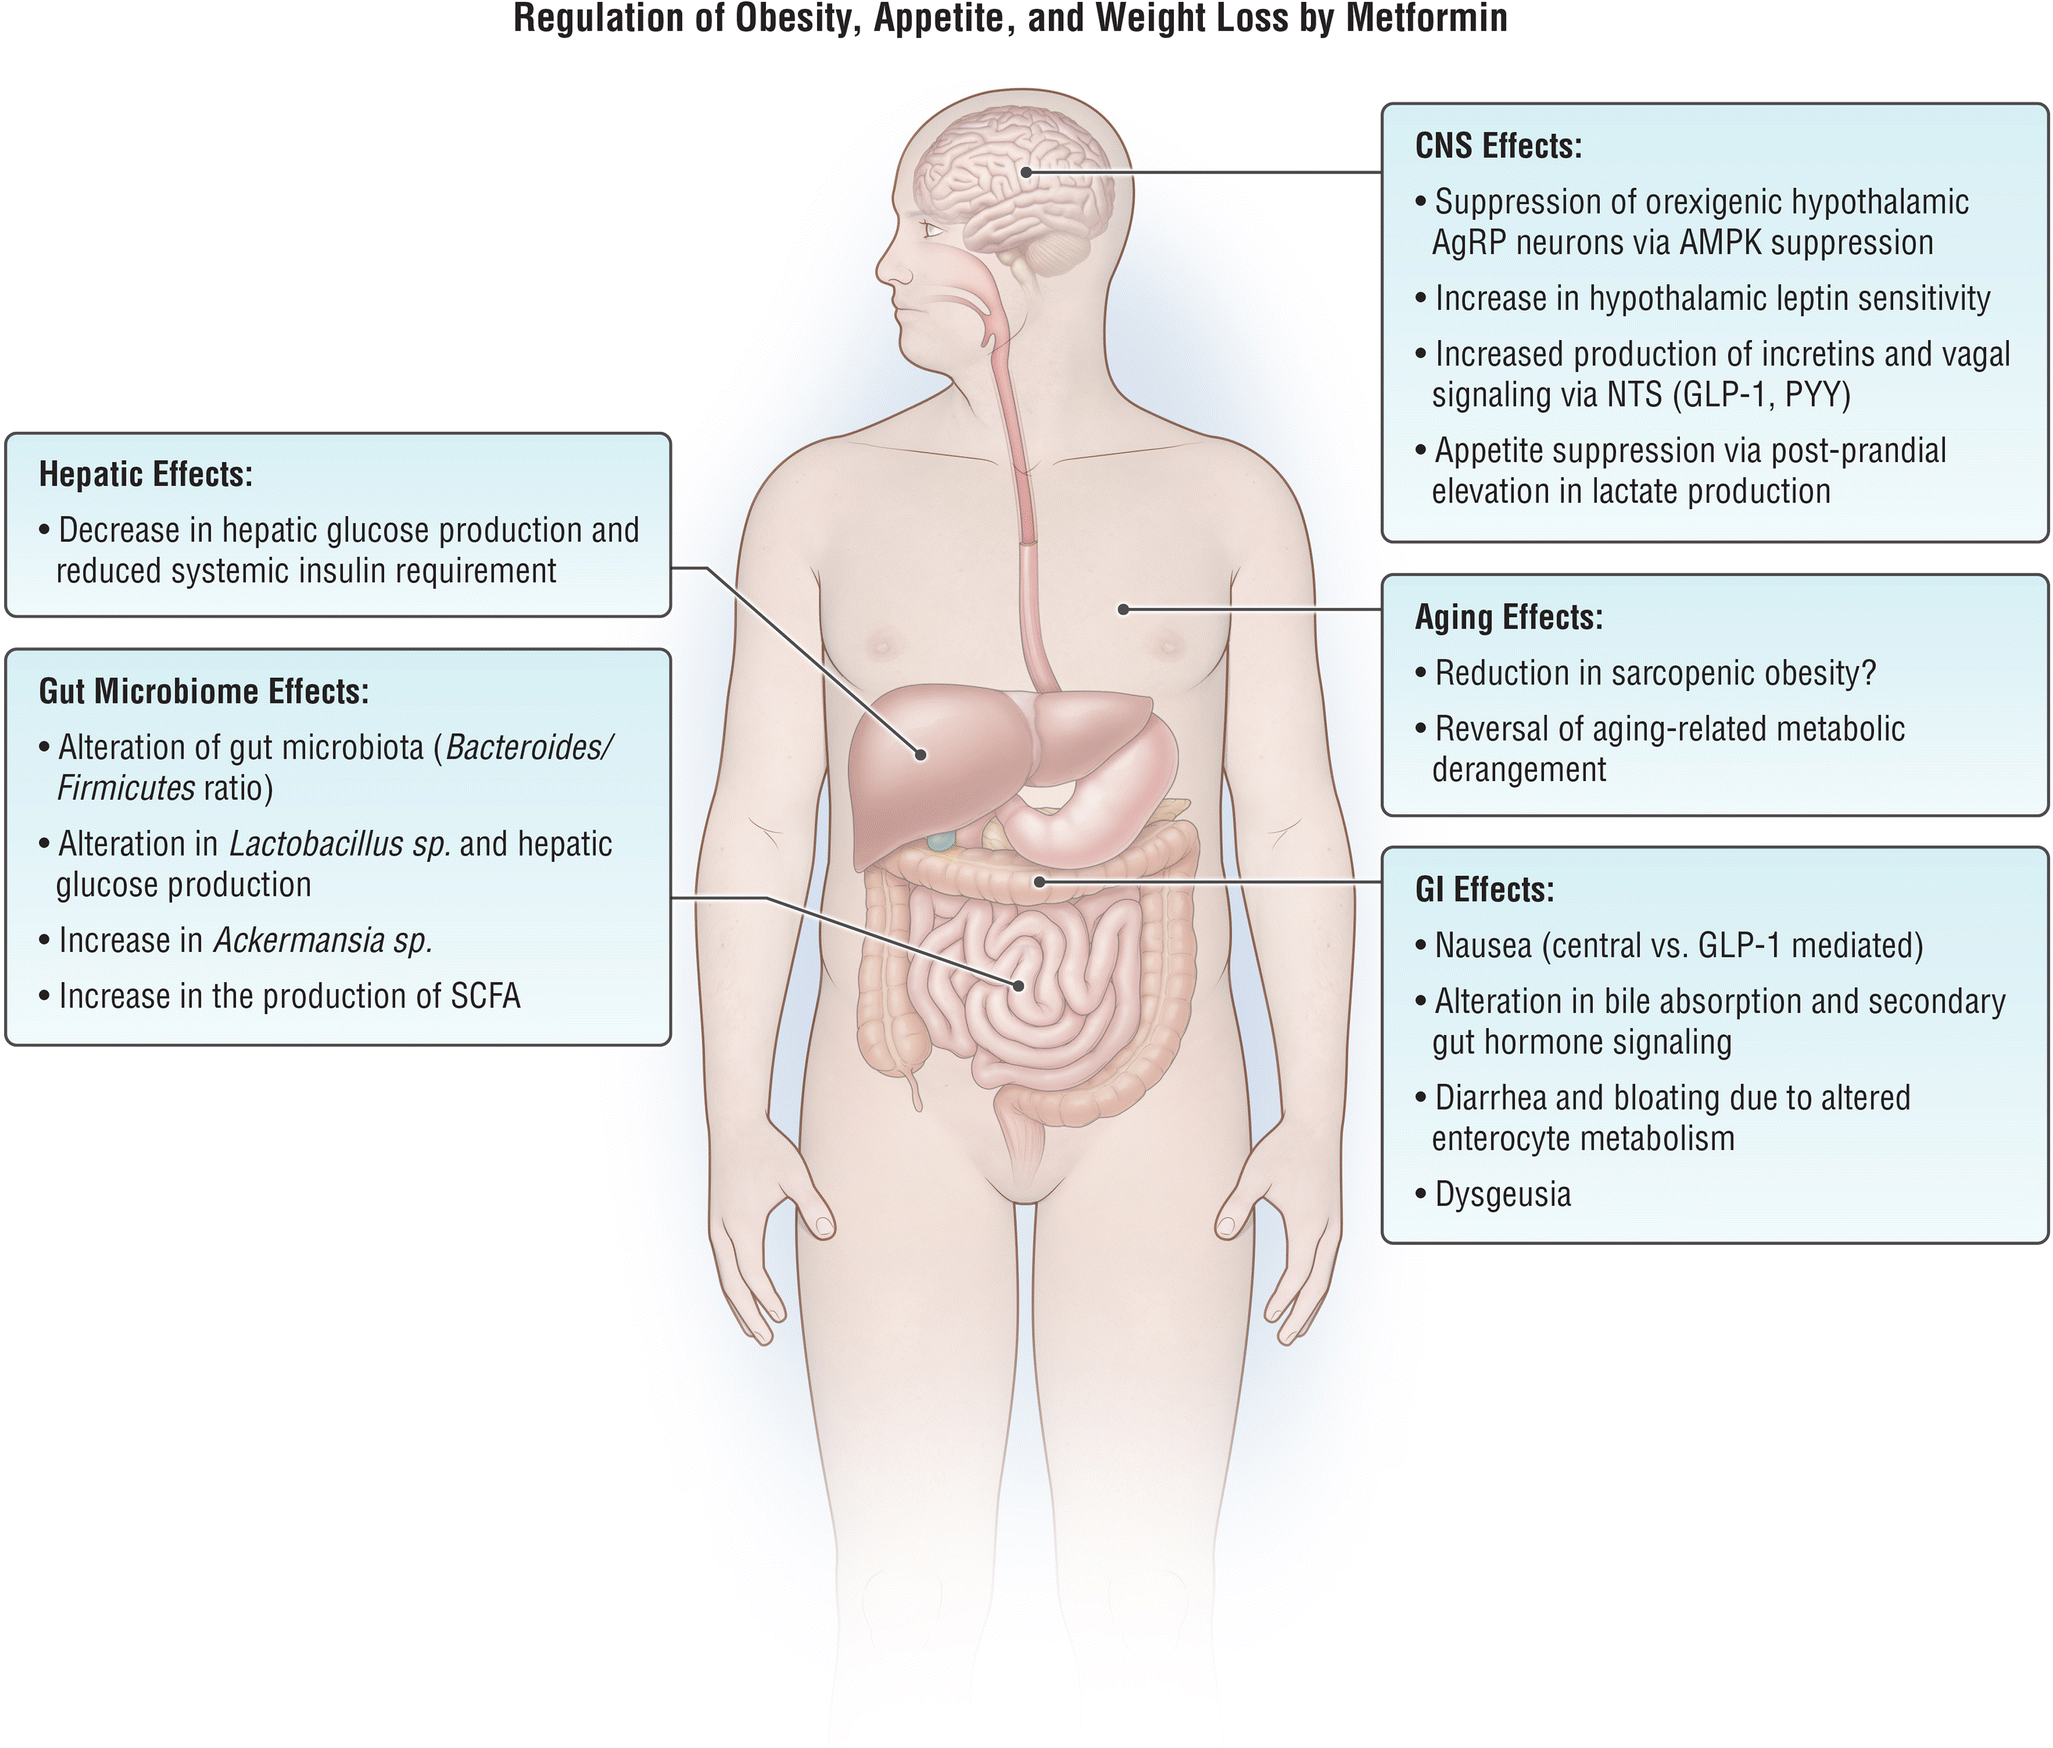 Metformin: Mechanisms in Human Obesity and Weight Loss